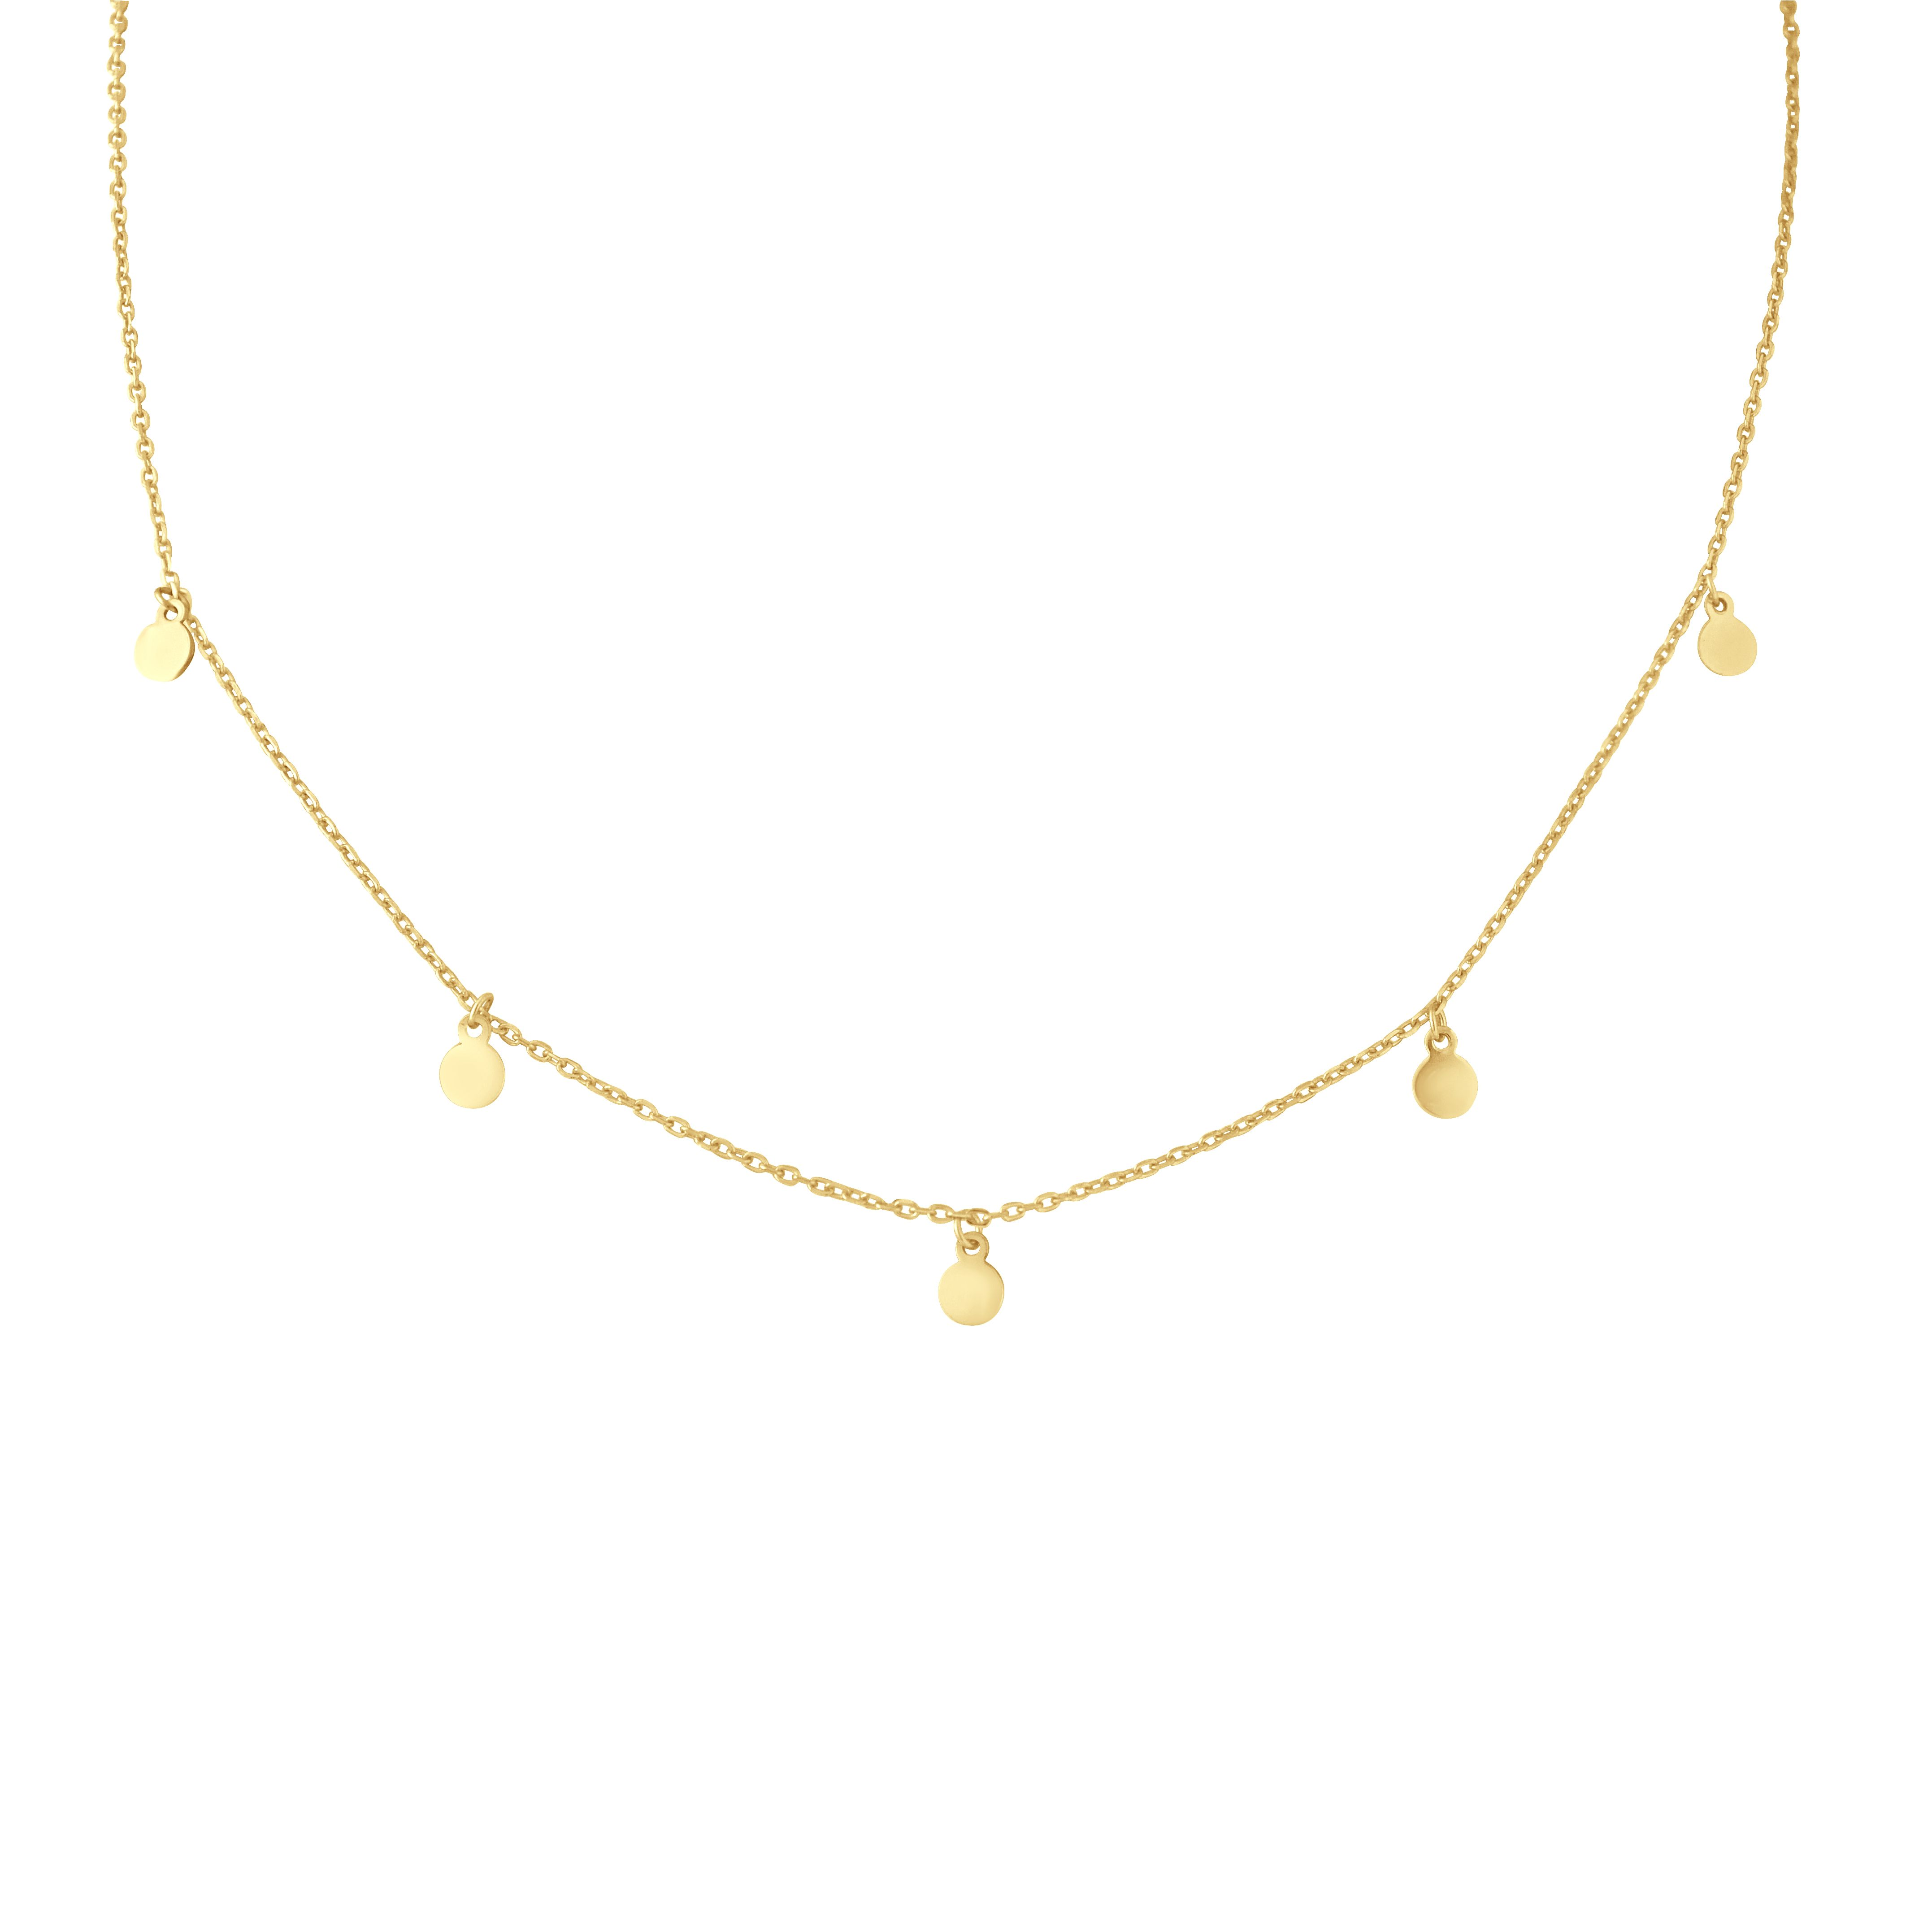 Necklace - Like a Star Collection